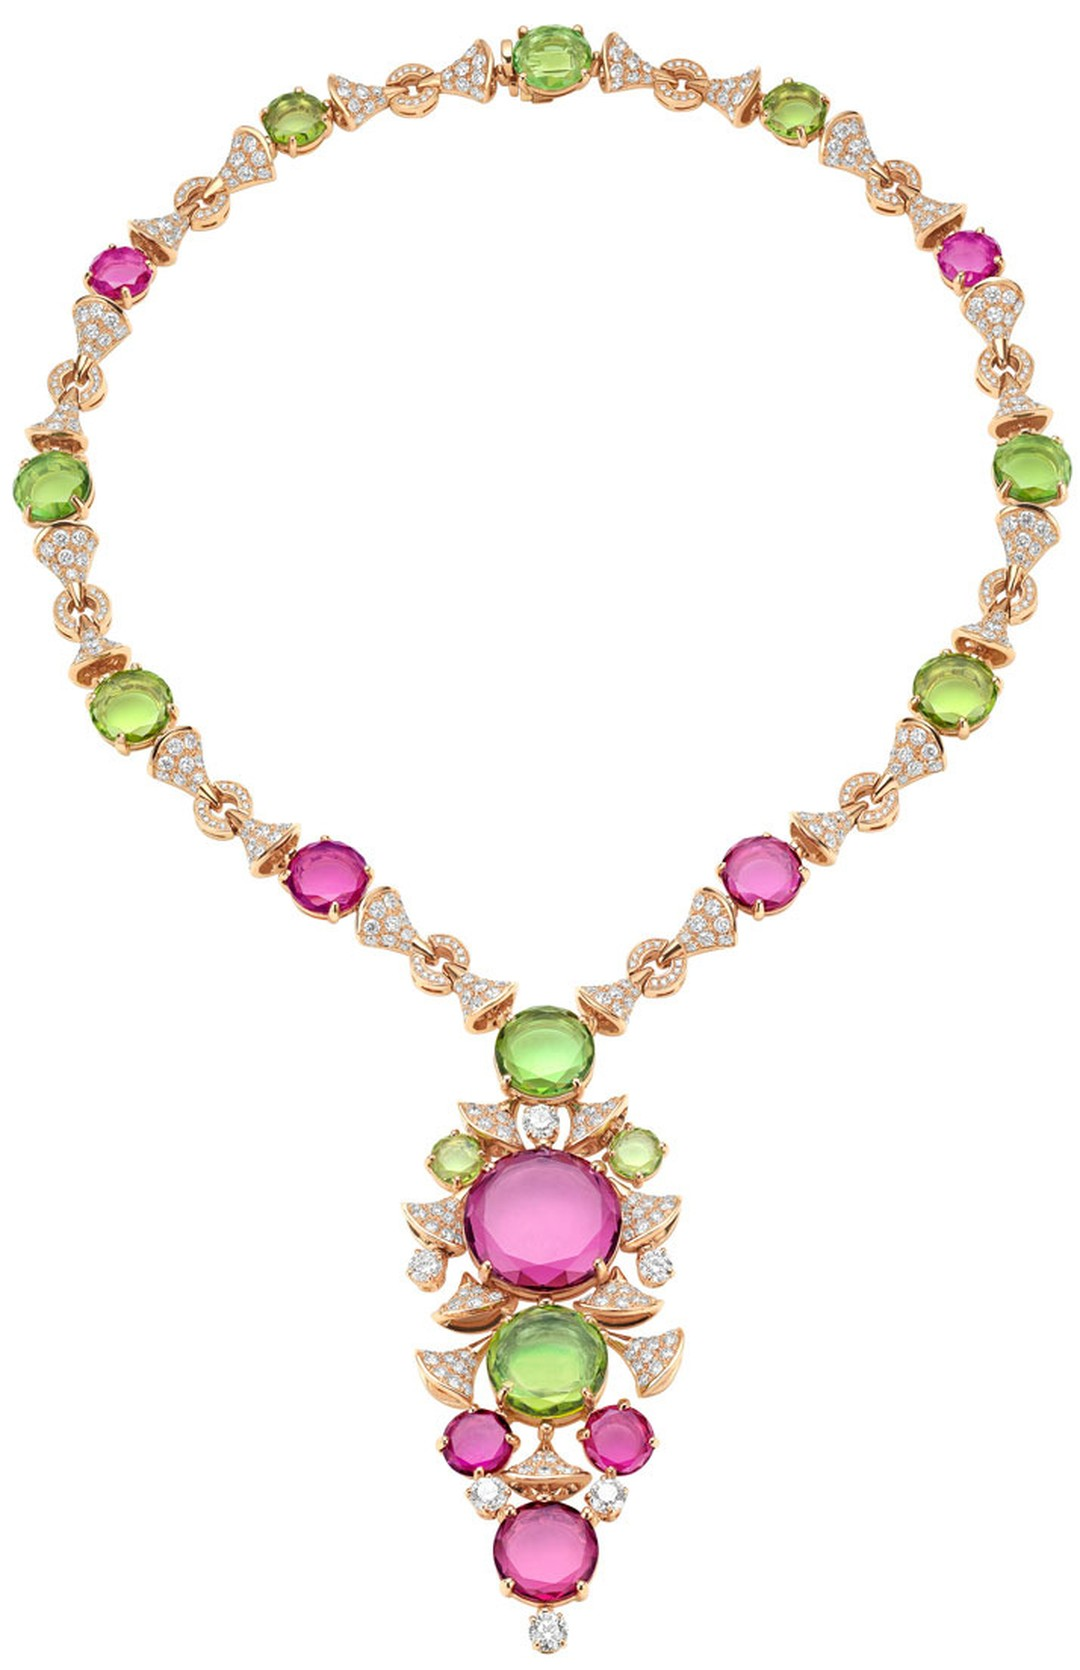 Bulgari Diva collection necklace combines peridot with purple rubellite and green tourmaline.